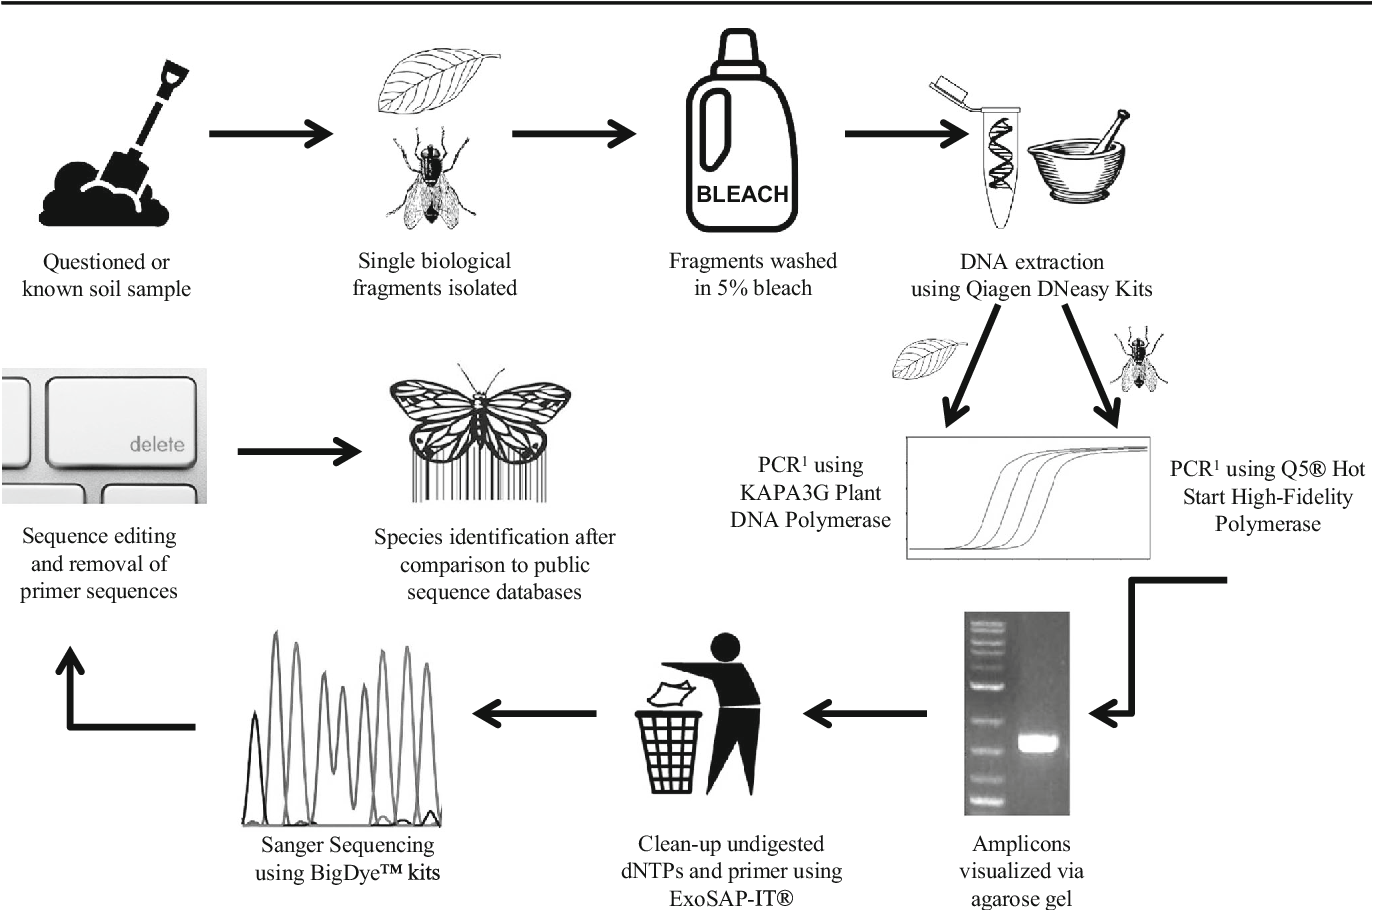 Figure 4 From A Protocol For Obtaining Dna Barcodes From Plant And Insect Fragments Isolated From Forensic Type Soils Semantic Scholar